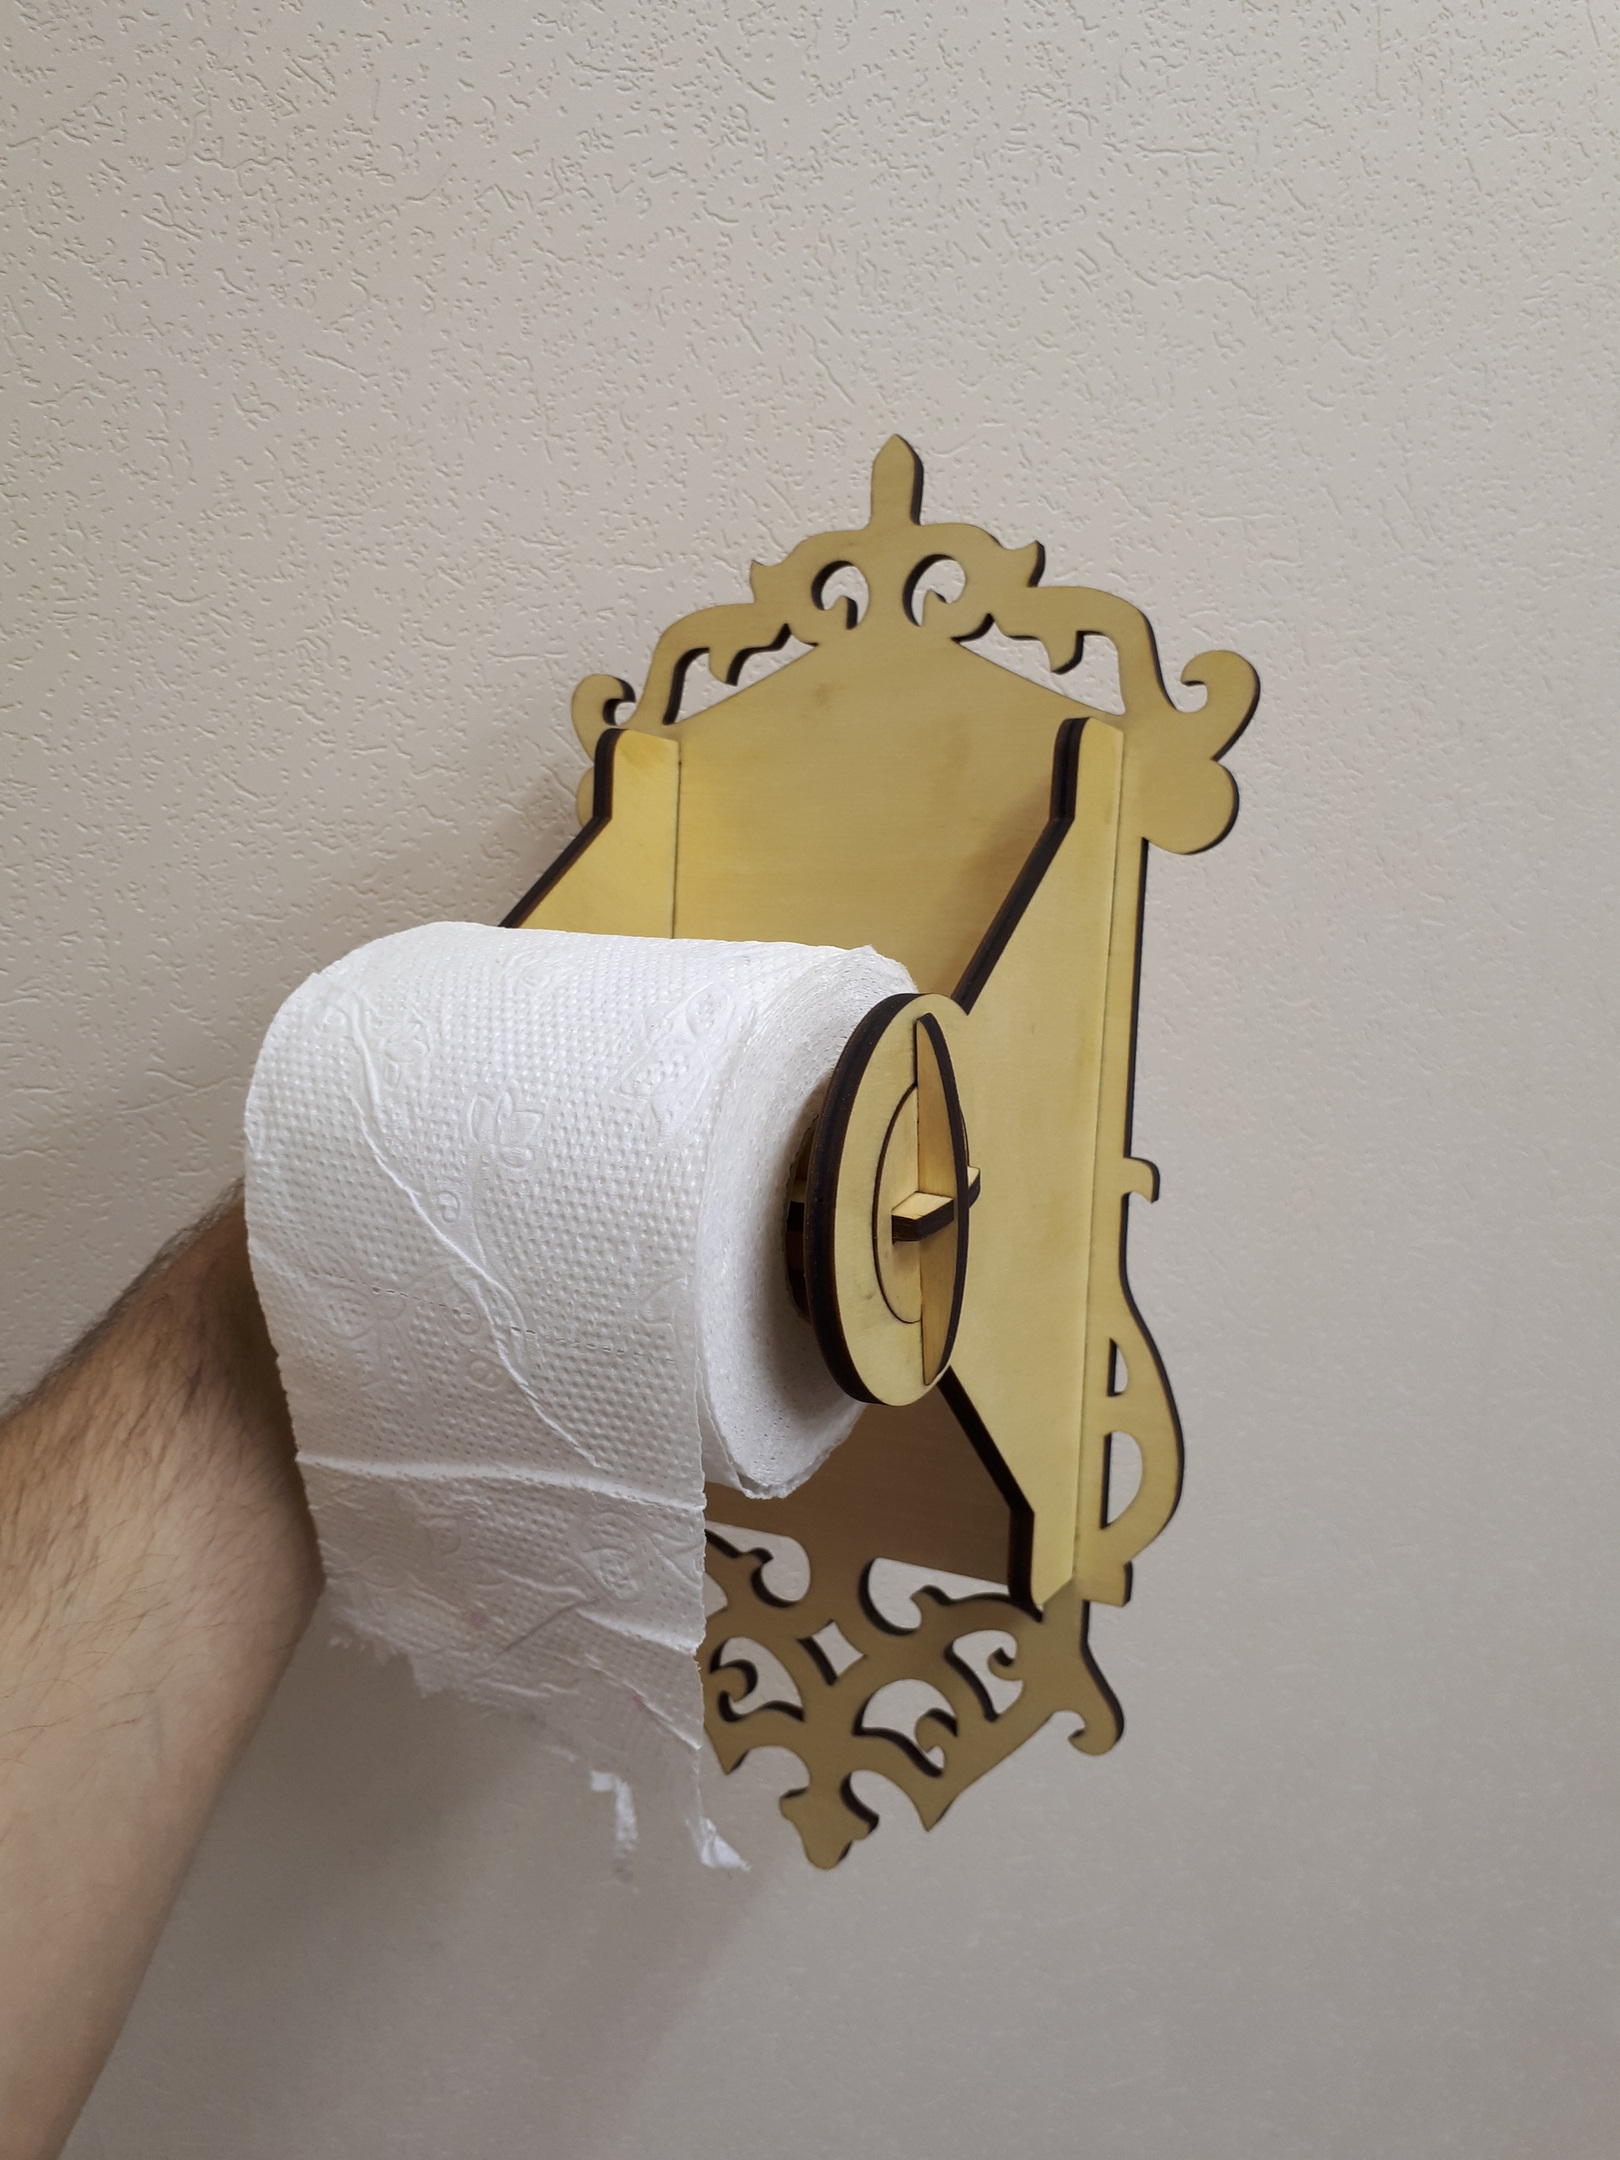 Toilet Paper Holder Laser cut Free Vector Cdr